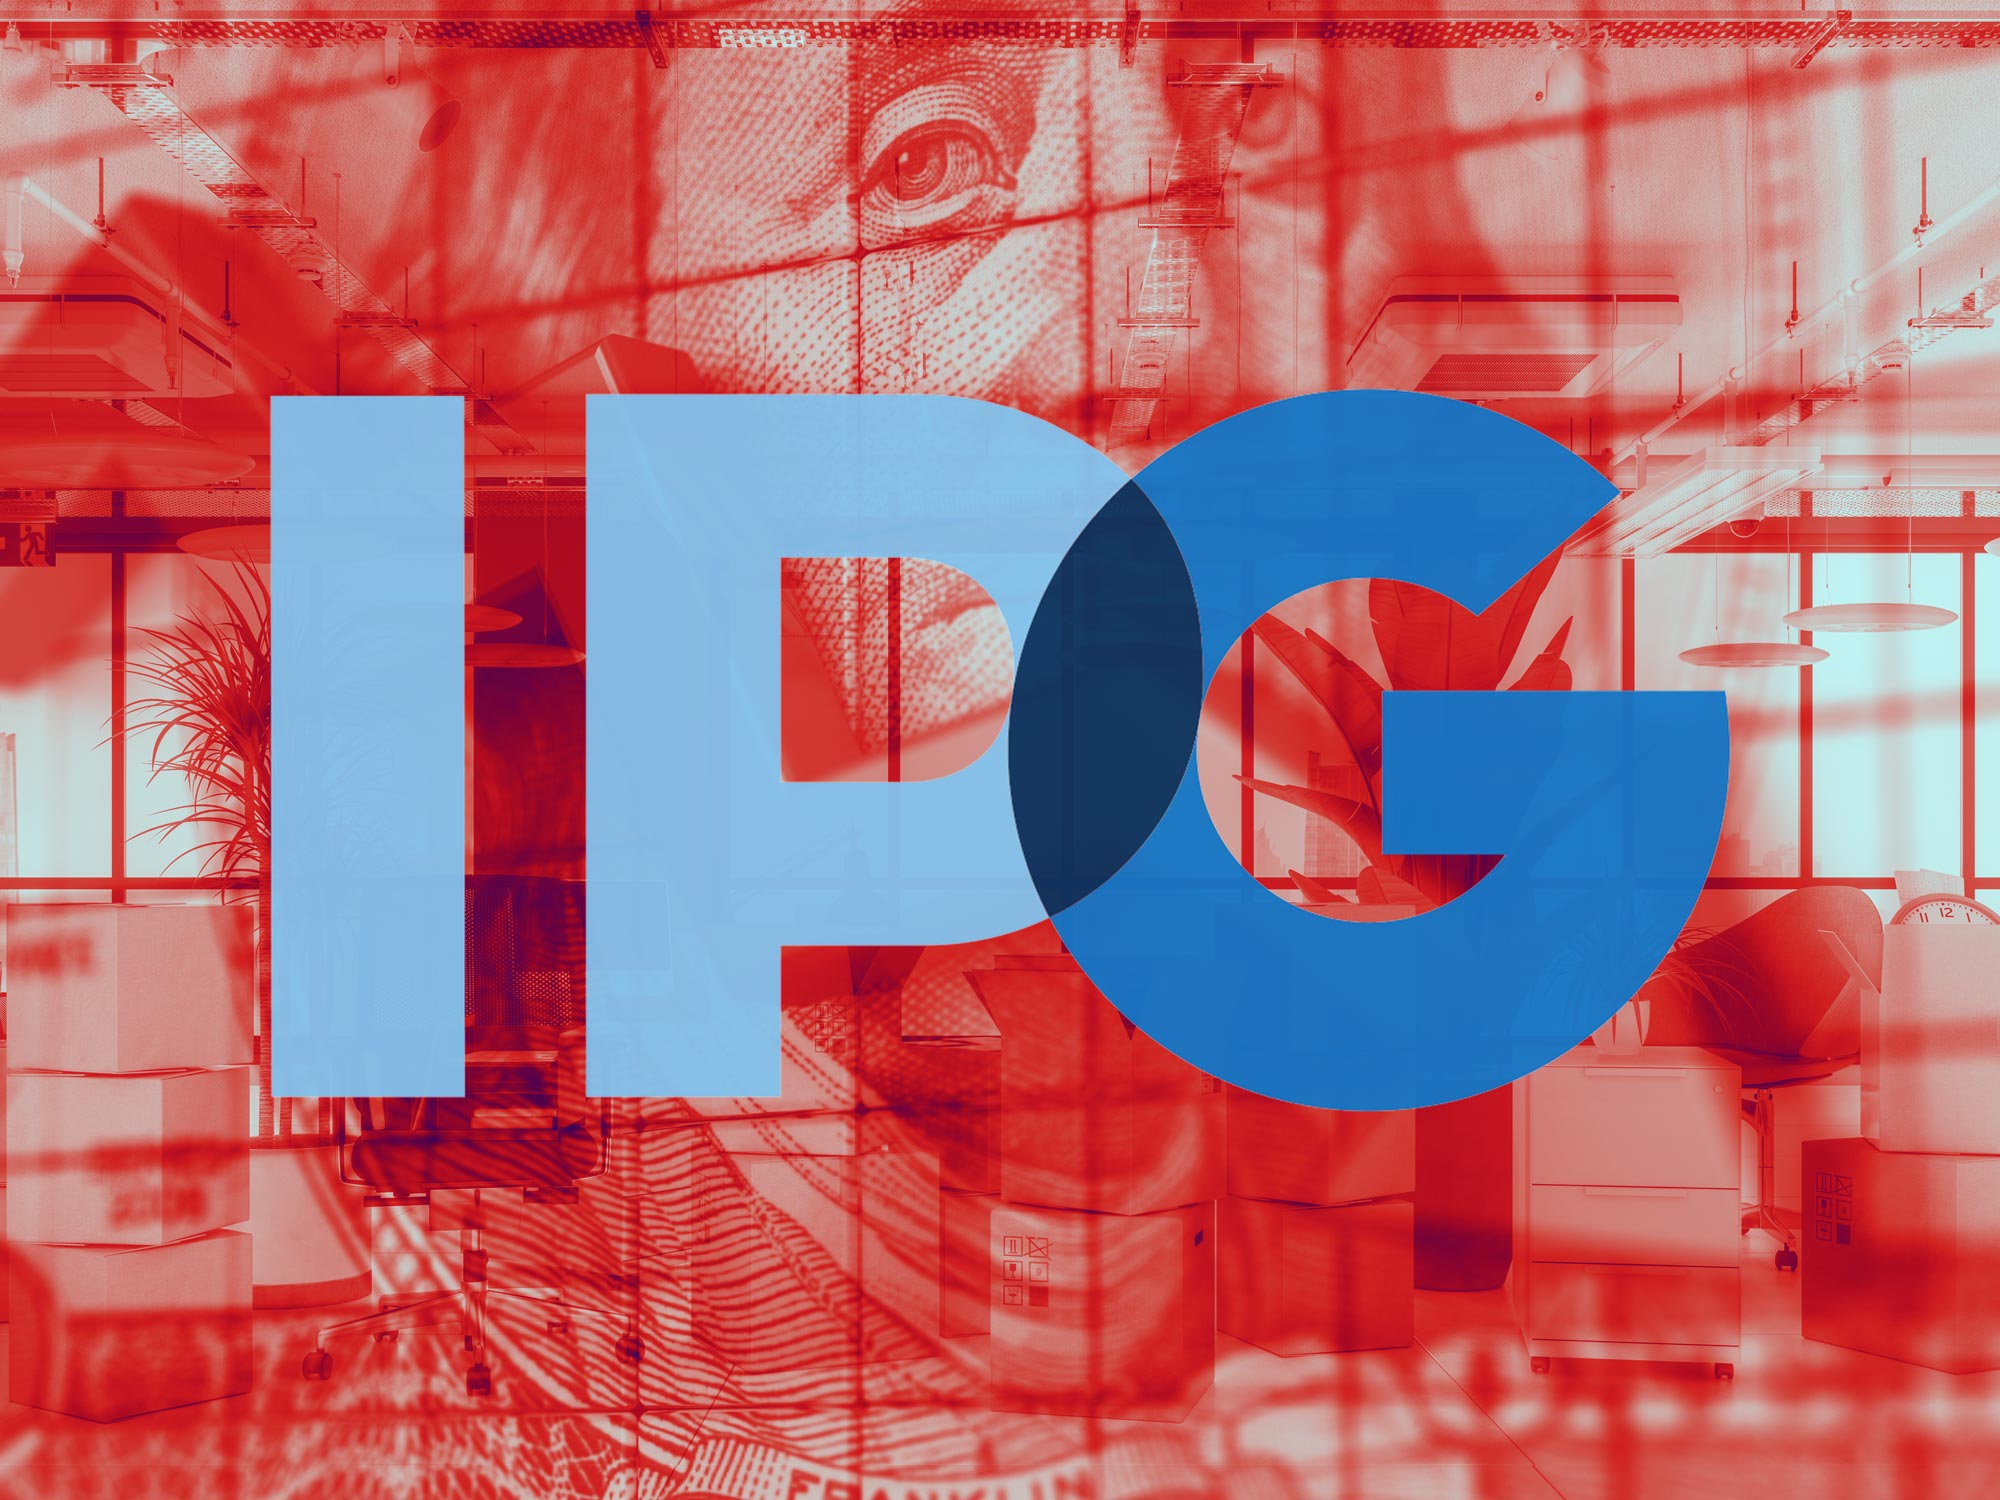 IPG reports second quarter revenue declines, CEO Michael Roth warns of further cost cuts